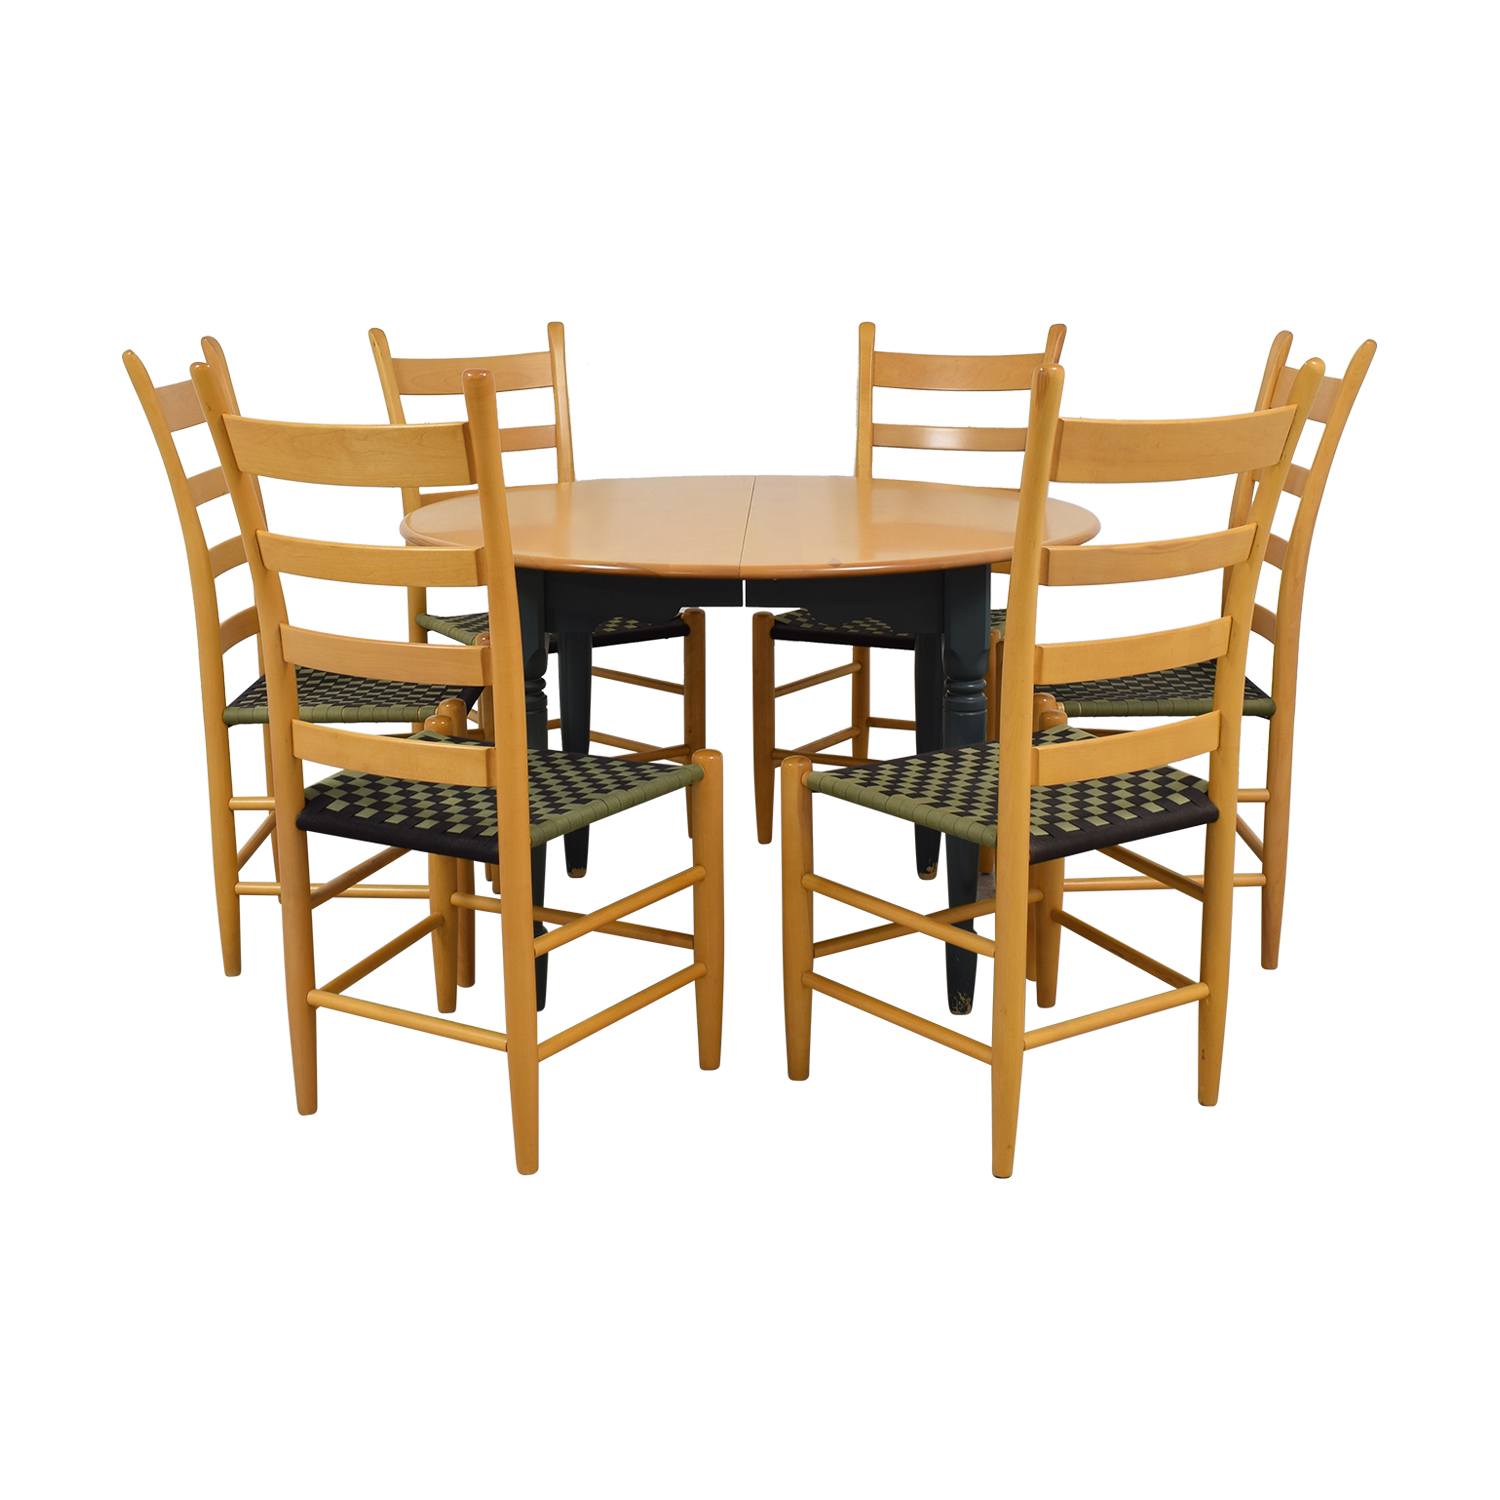 Nichols & Stone Nichols & Stone Round Extendable Dining Set dimensions